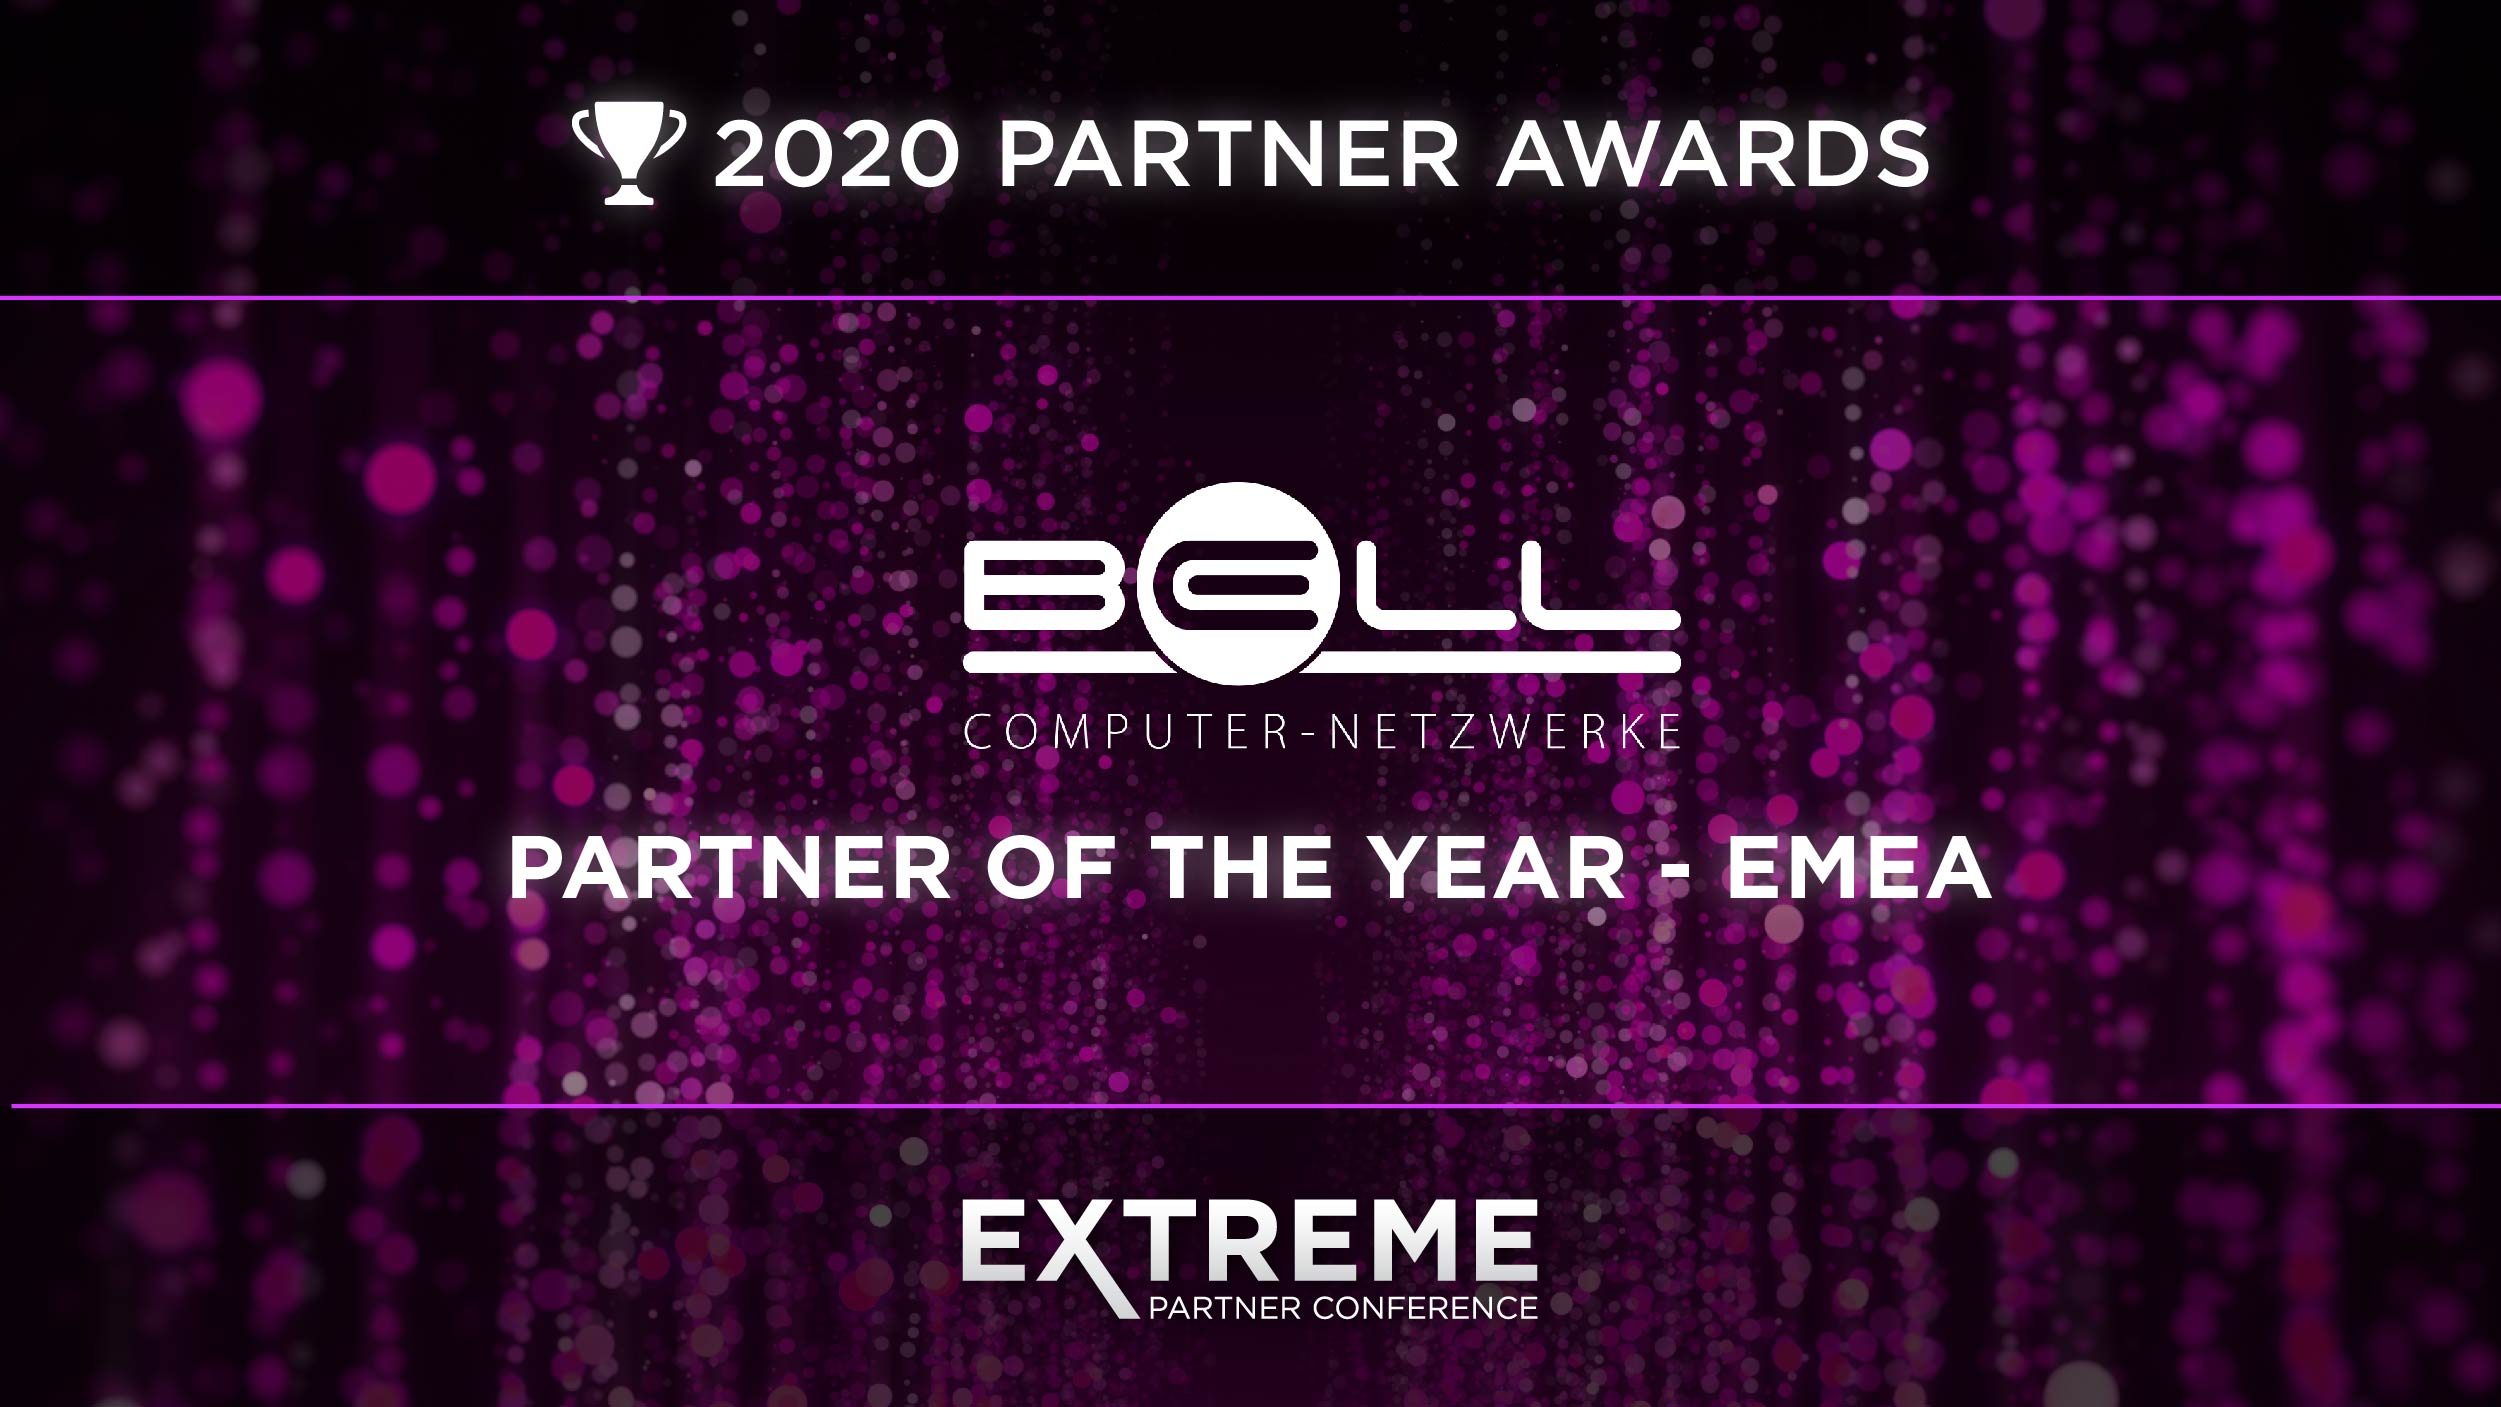 Partner of the Year – EMEA 2020